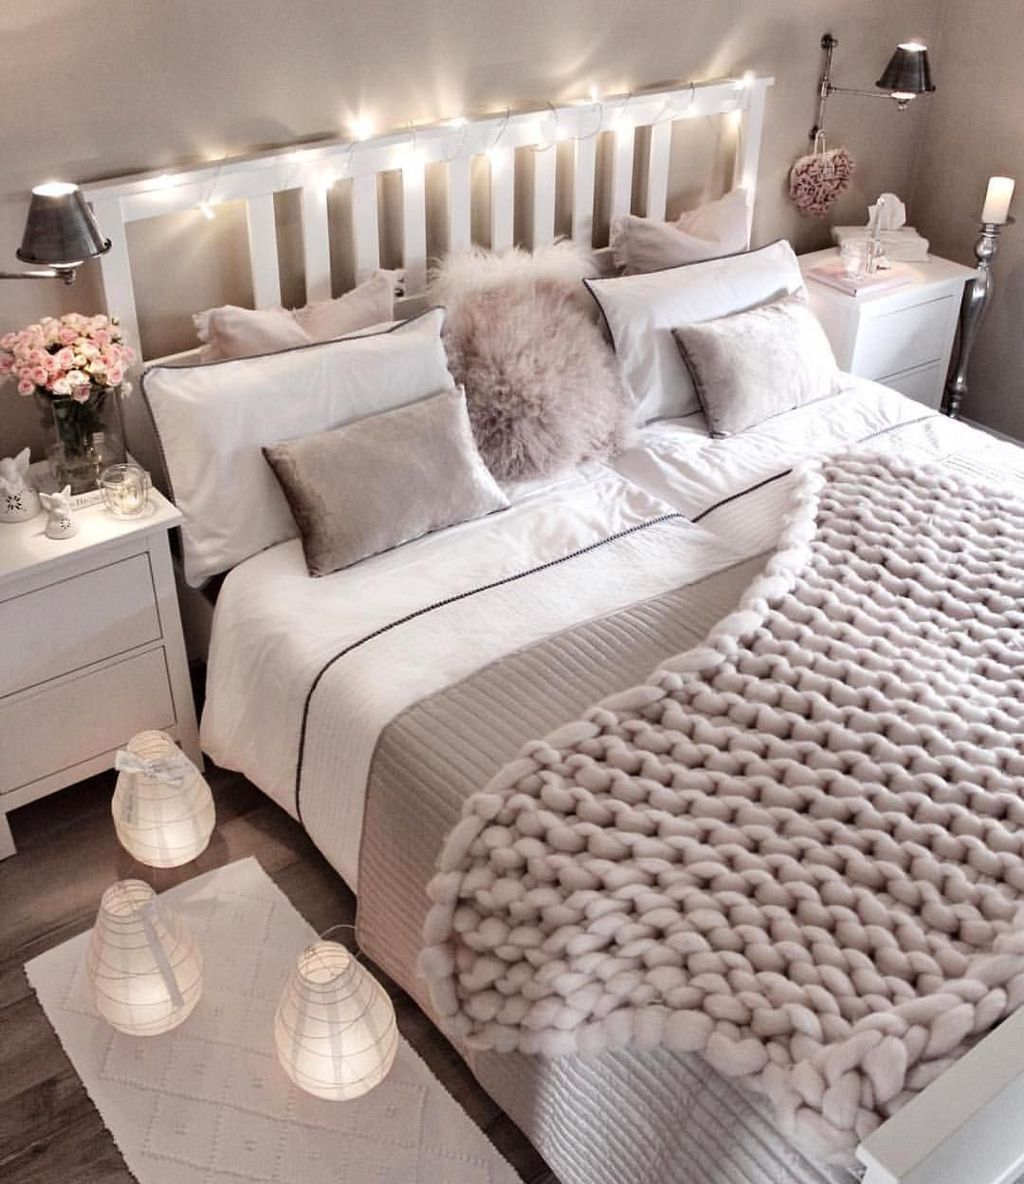 59 Amazing Decoration Ideas For Small Bedroom